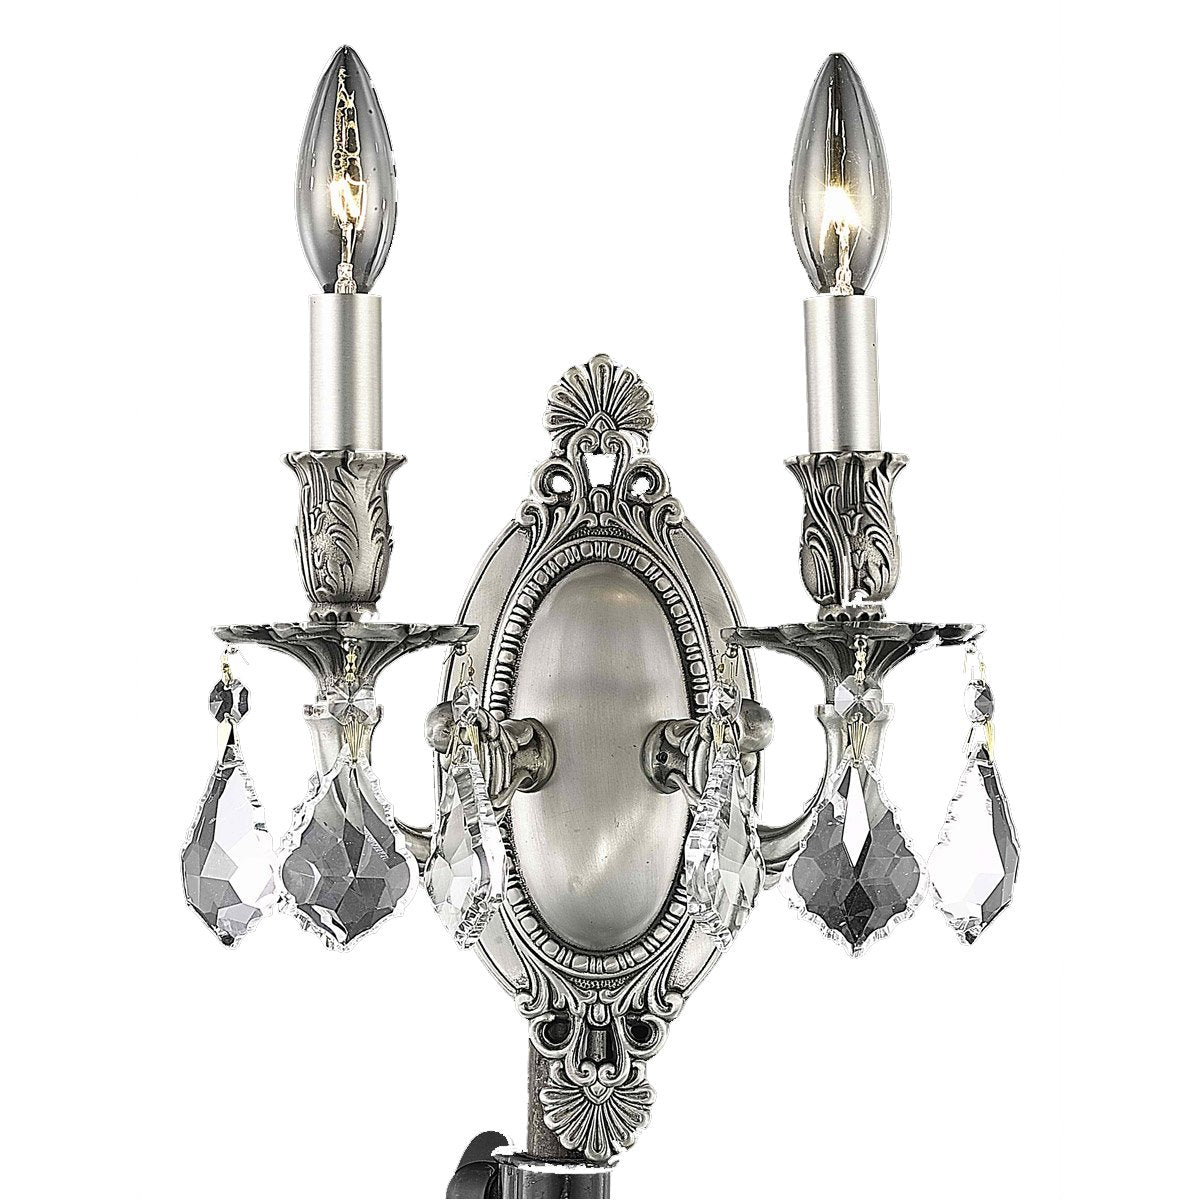 Rosalia 9 Crystal Wall Sconce With 2 Lights - Pewter Finish And Clear / Royal Cut Crystal Wall Sconce